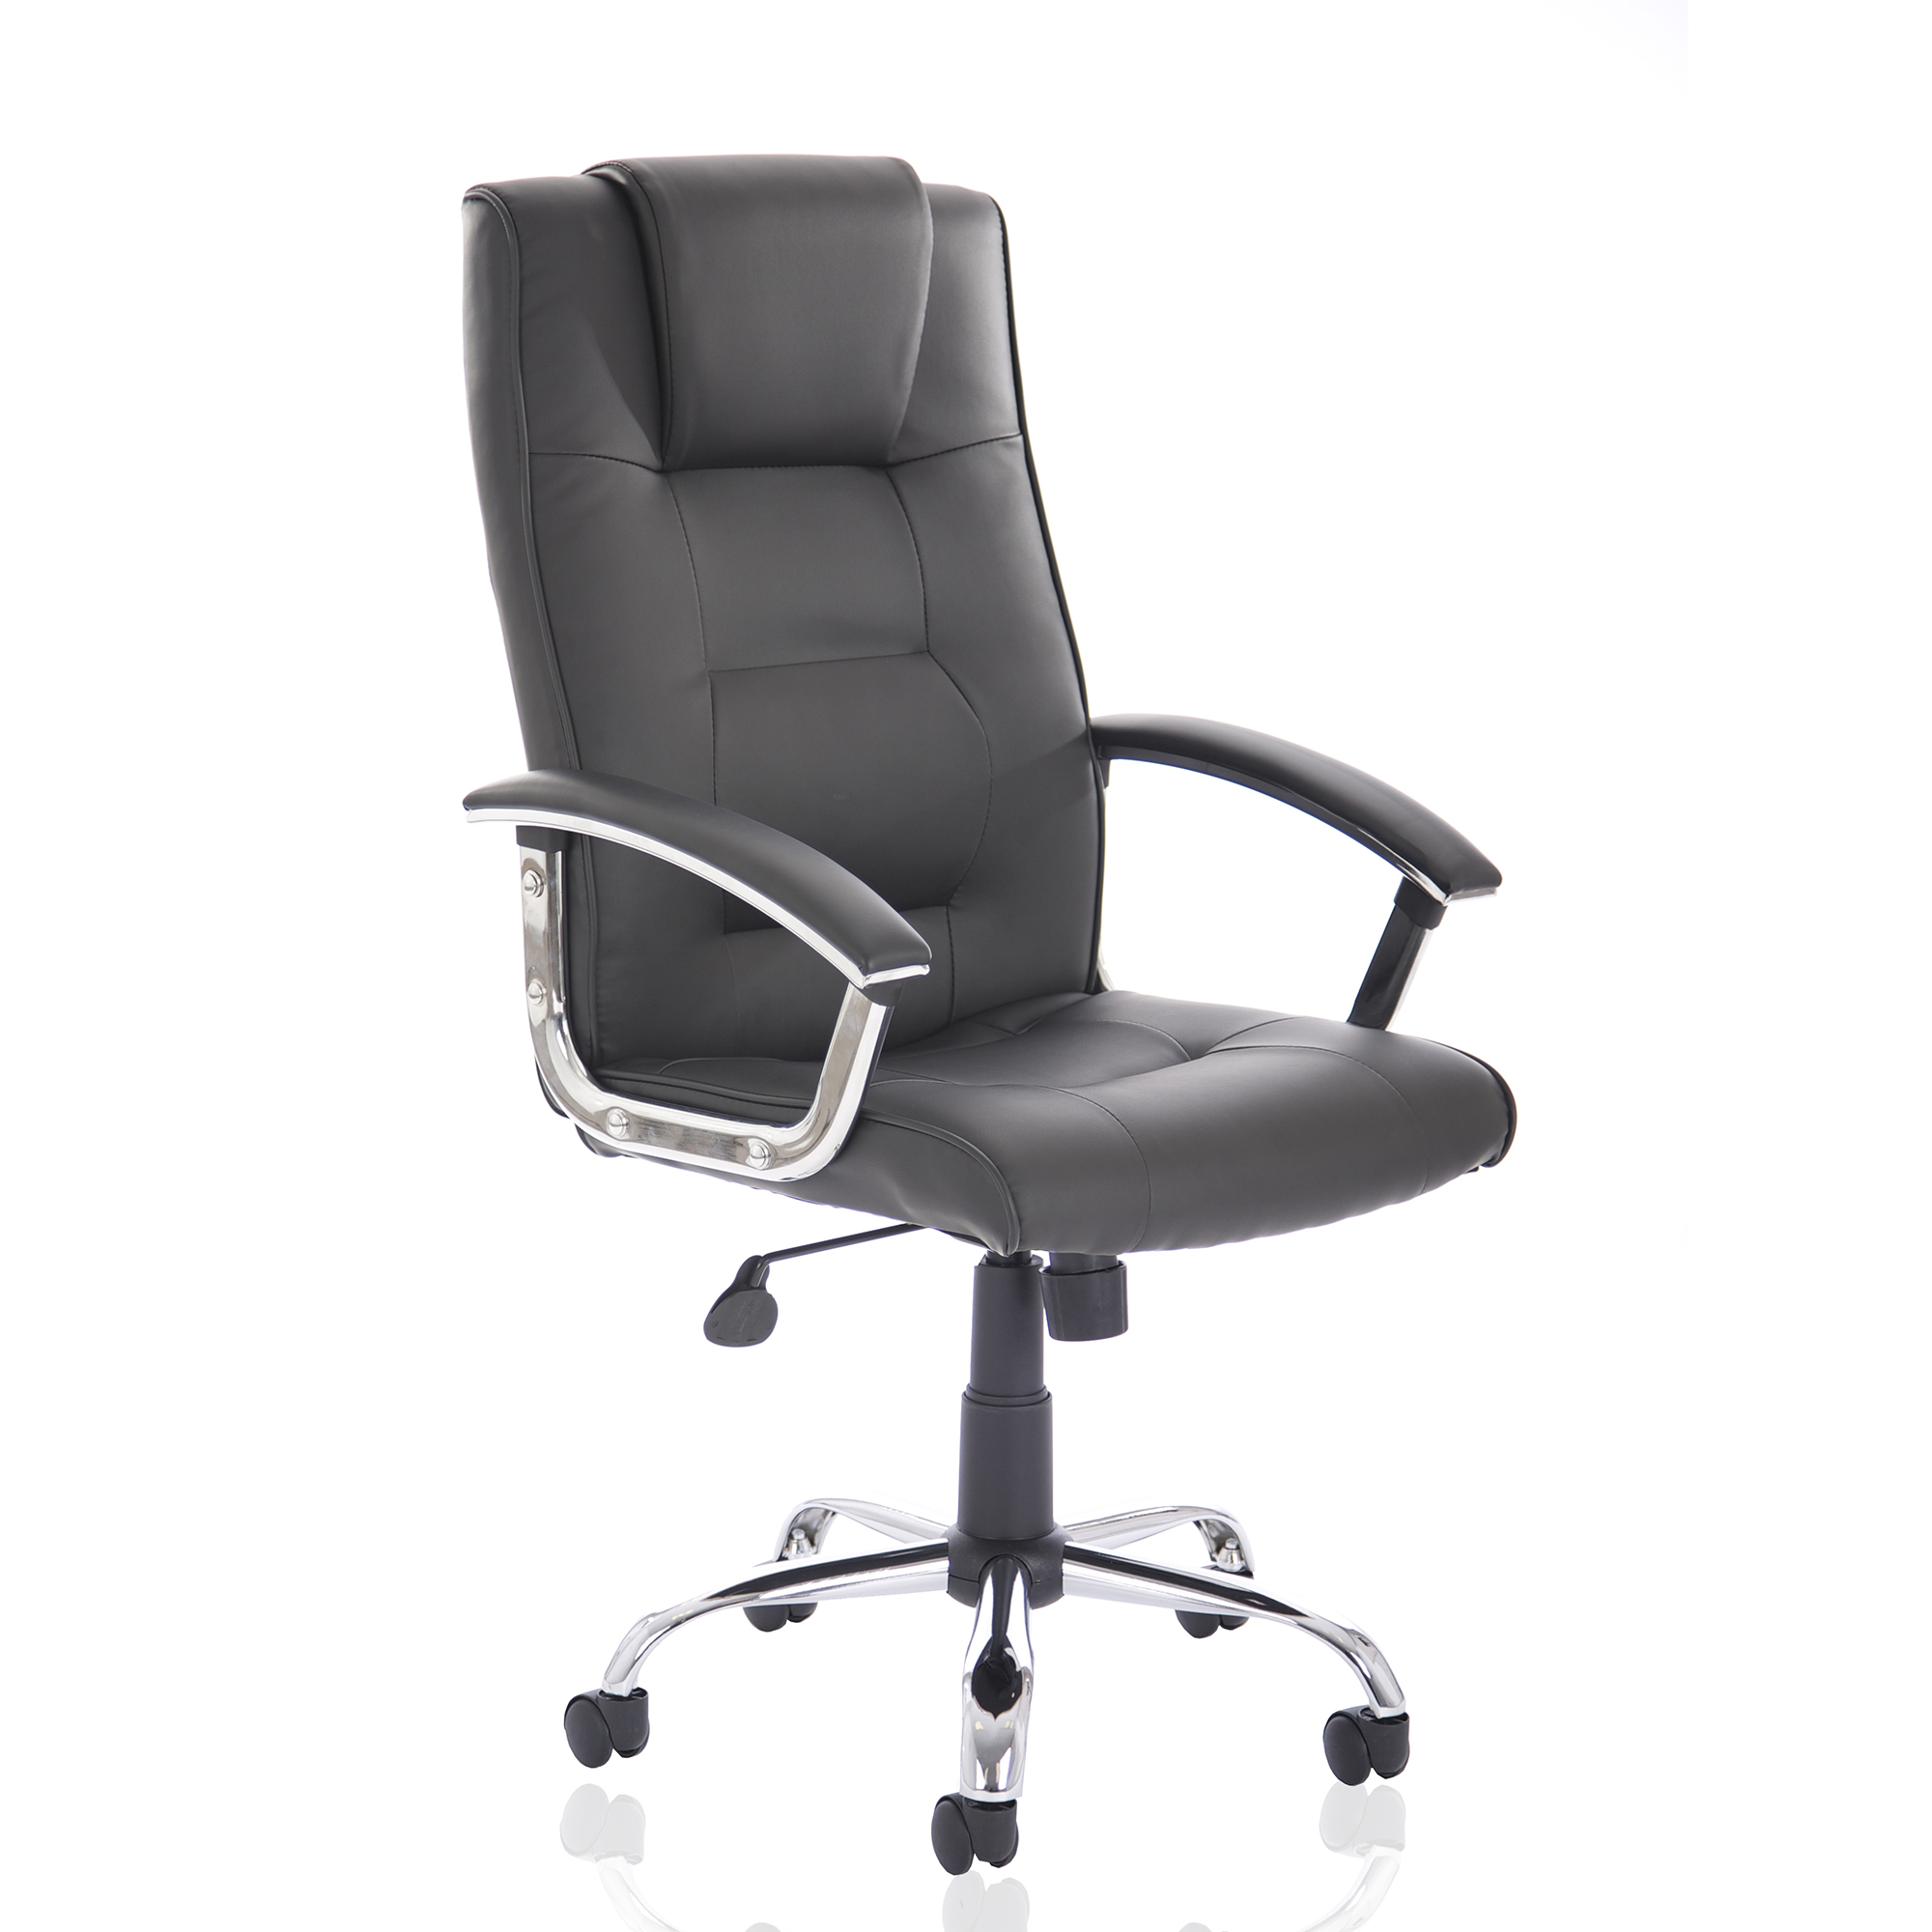 Executive seating Trexus Thrift Executive Chair With Padded Arms Bonded Leather Black Ref EX000163